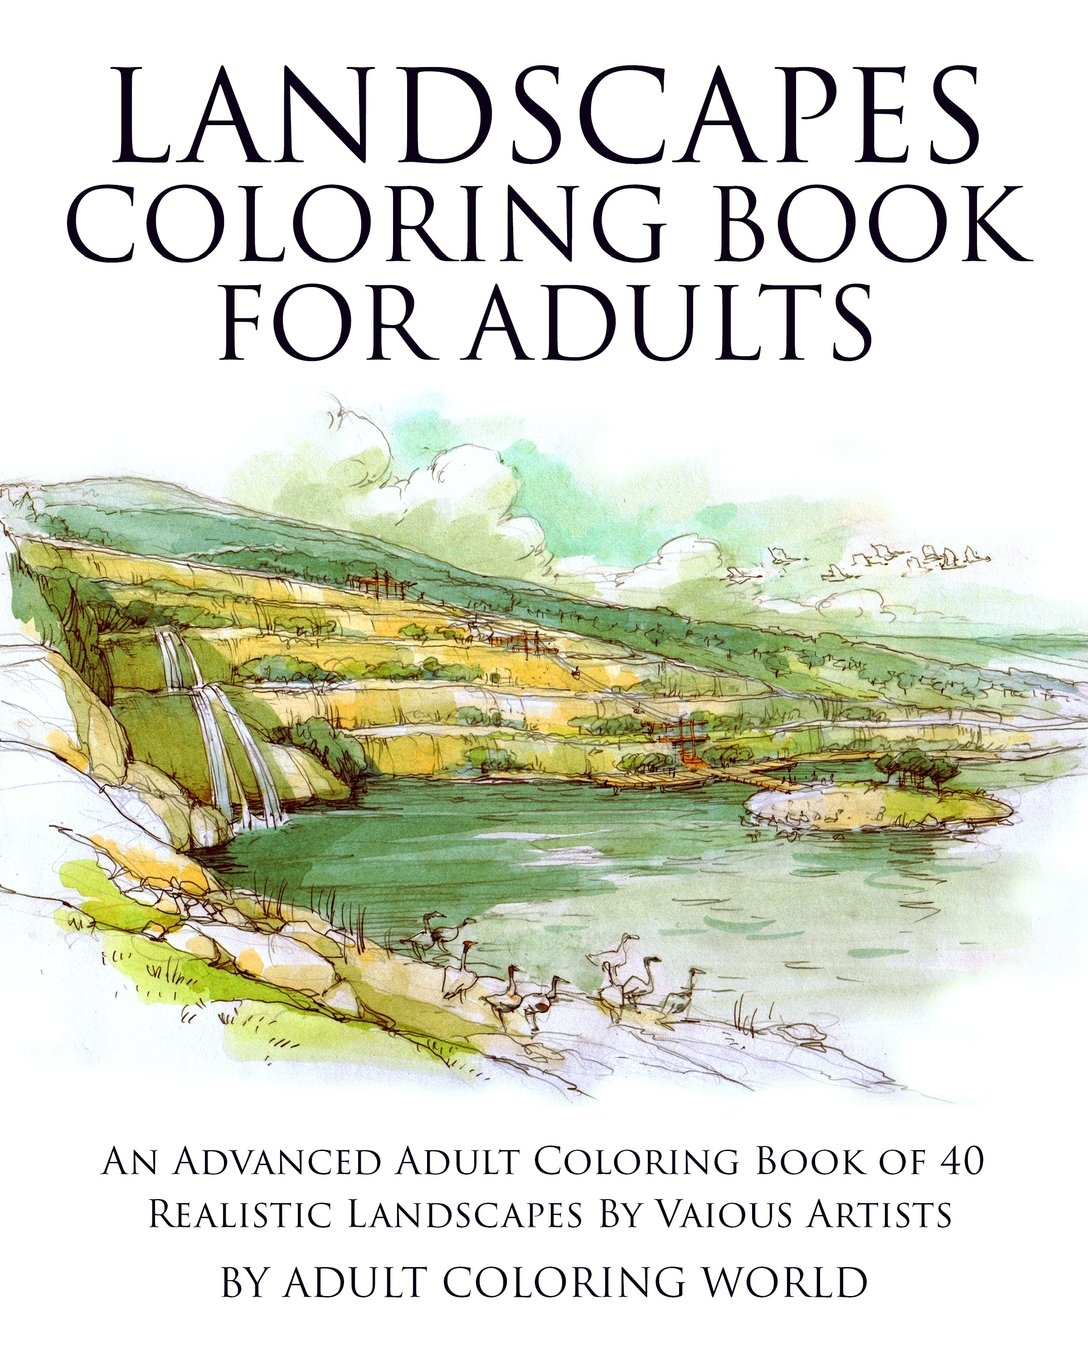 amazoncom landscapes coloring book for adults an advanced adult coloring book of 40 realistic landscapes by various artists advanced adult coloring - Advanced Coloring Books For Adults